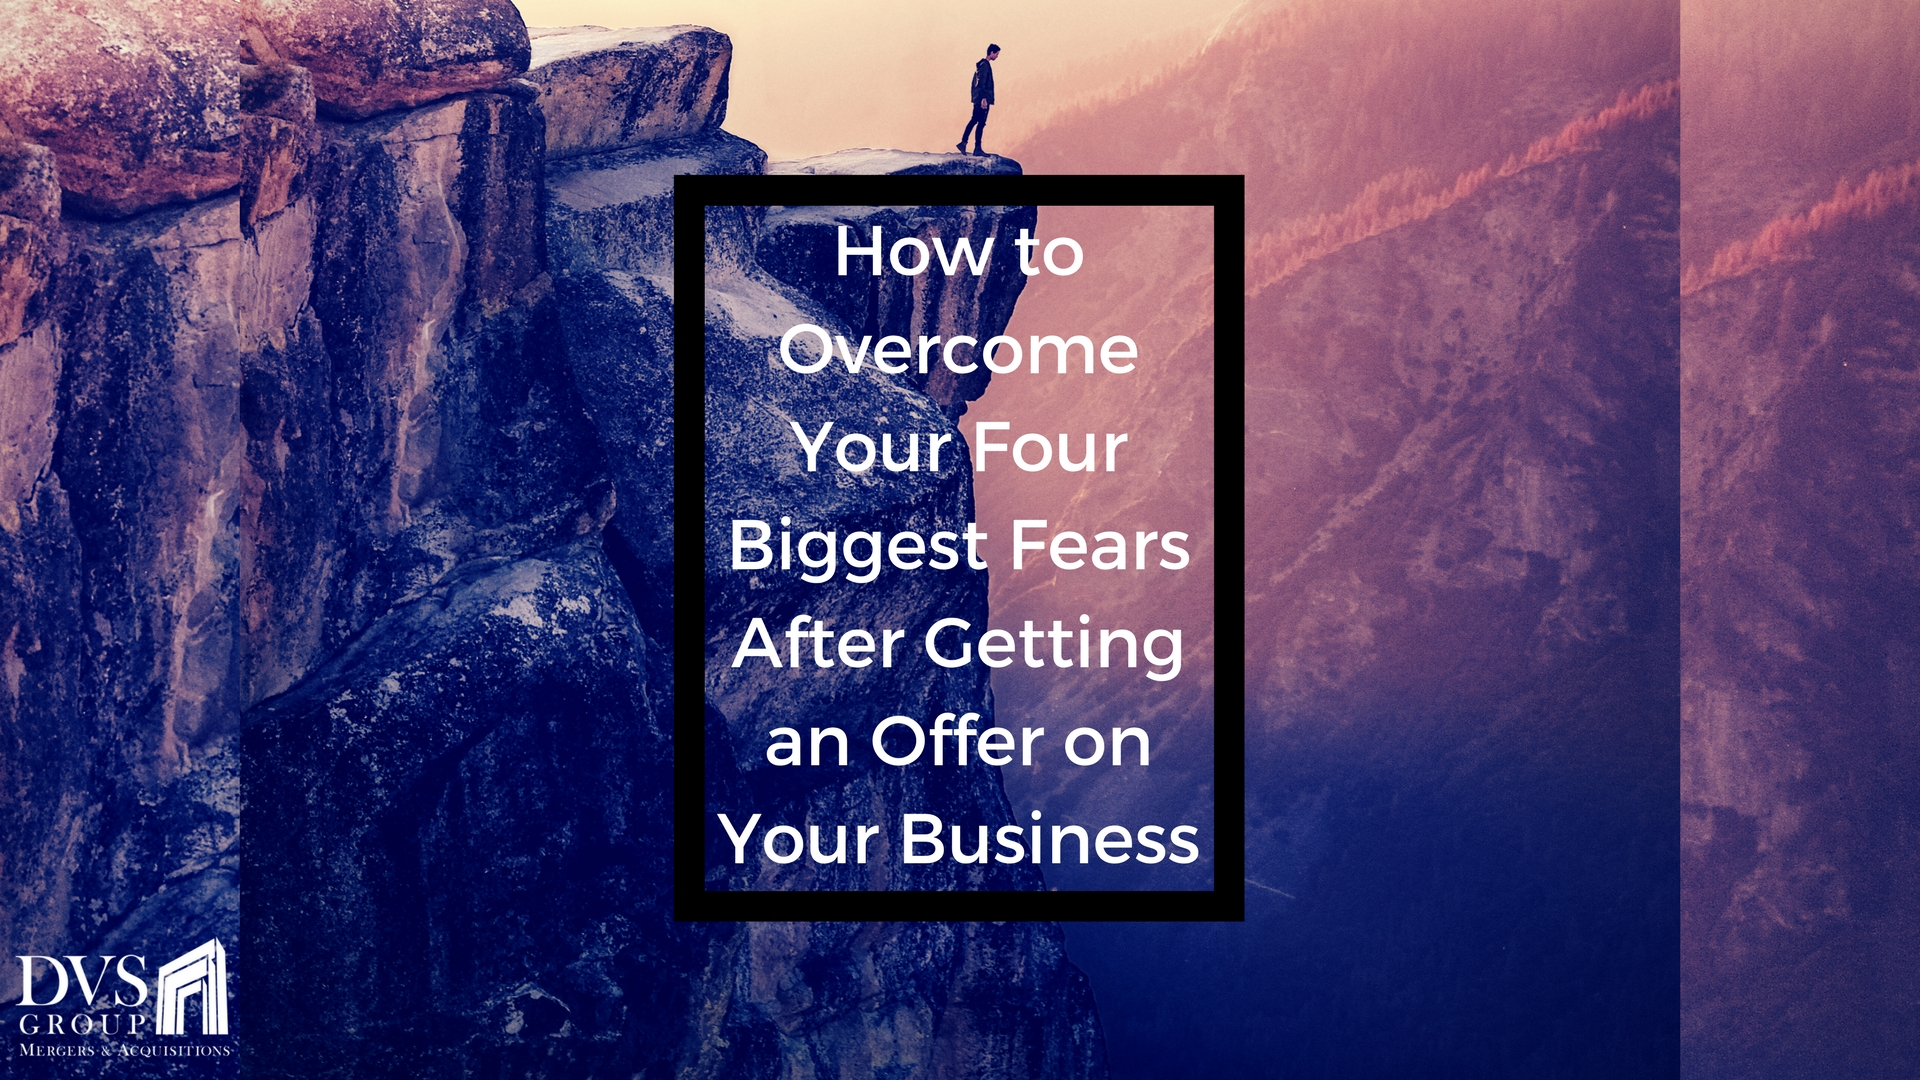 How to Overcome Your Four Biggest Fears After Getting an Offer on Your Business